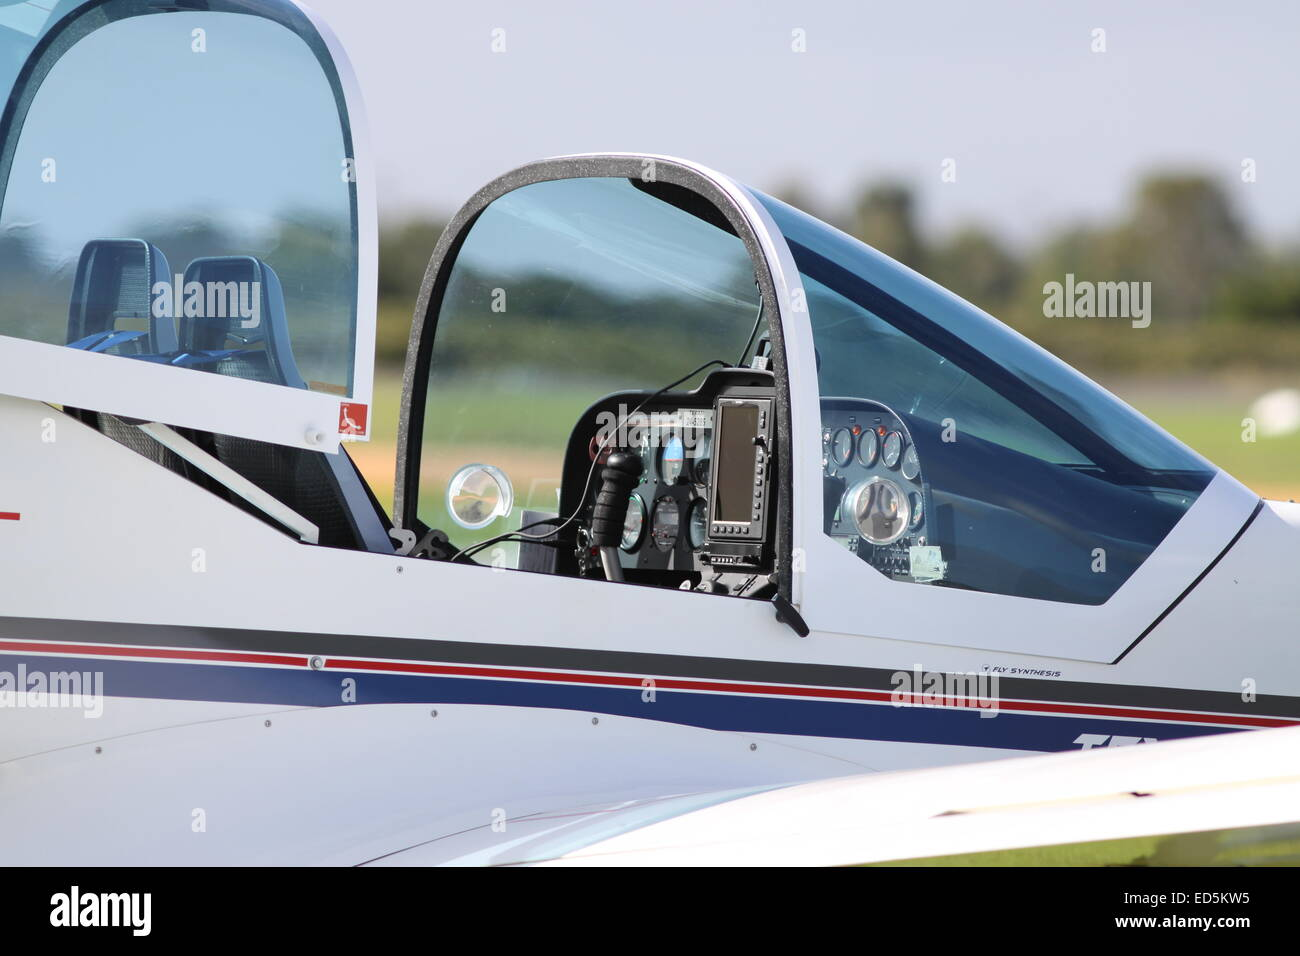 Airplane Cockpit - Stock Image